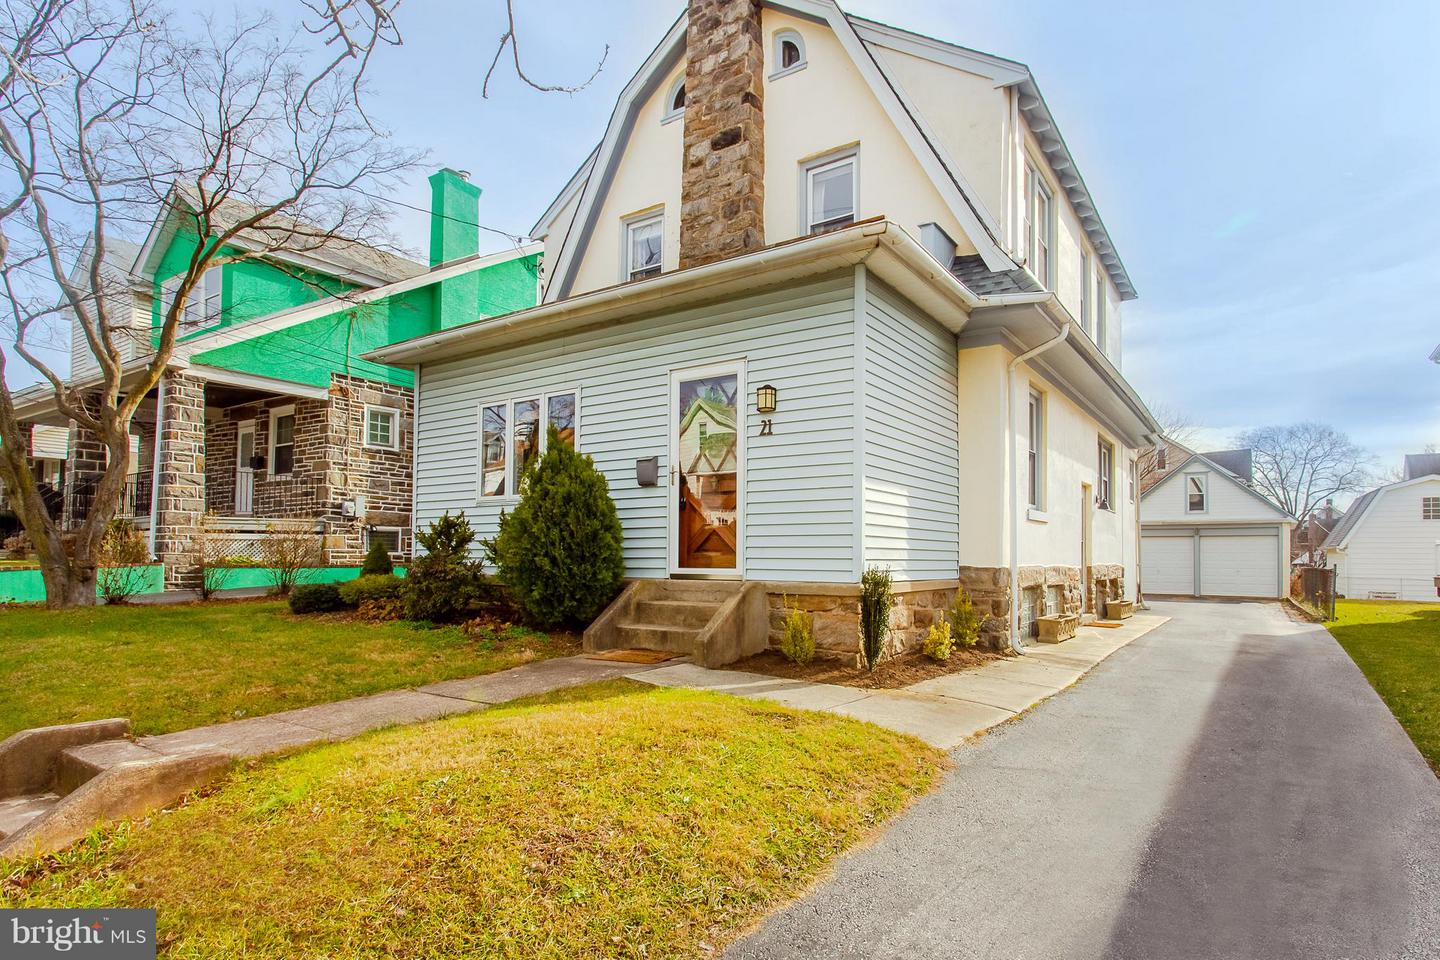 21 Campbell Avenue Havertown, PA 19083